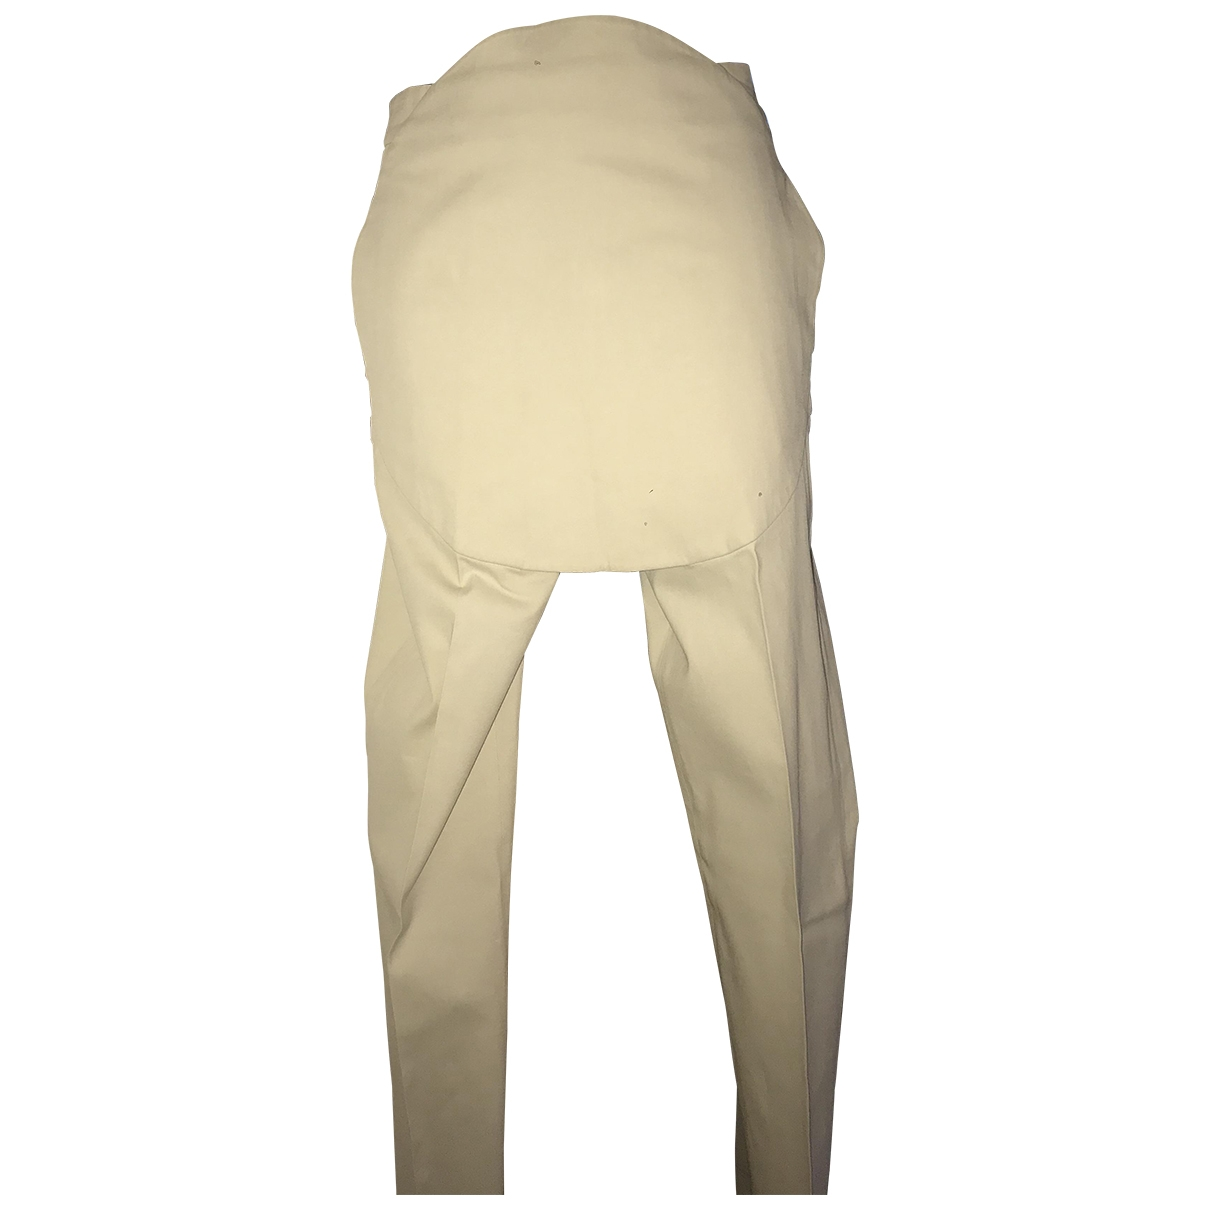 Maison Martin Margiela \N Beige Cotton Trousers for Women 38 IT